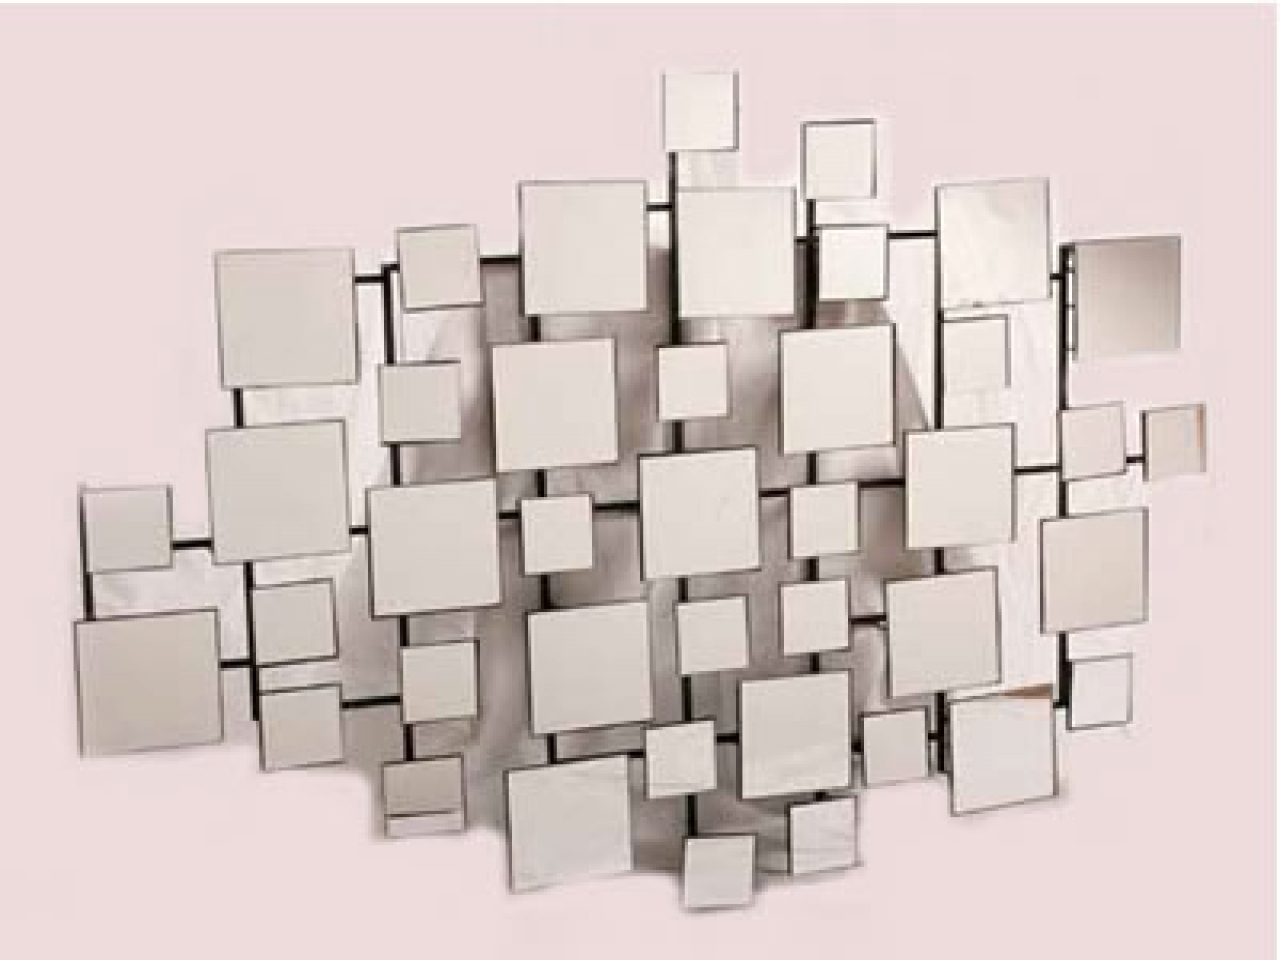 Famous Wall Art Designs: Mirrored Wall Art Geometric Mirror Wall Art For Mirrors Modern Wall Art (View 4 of 15)